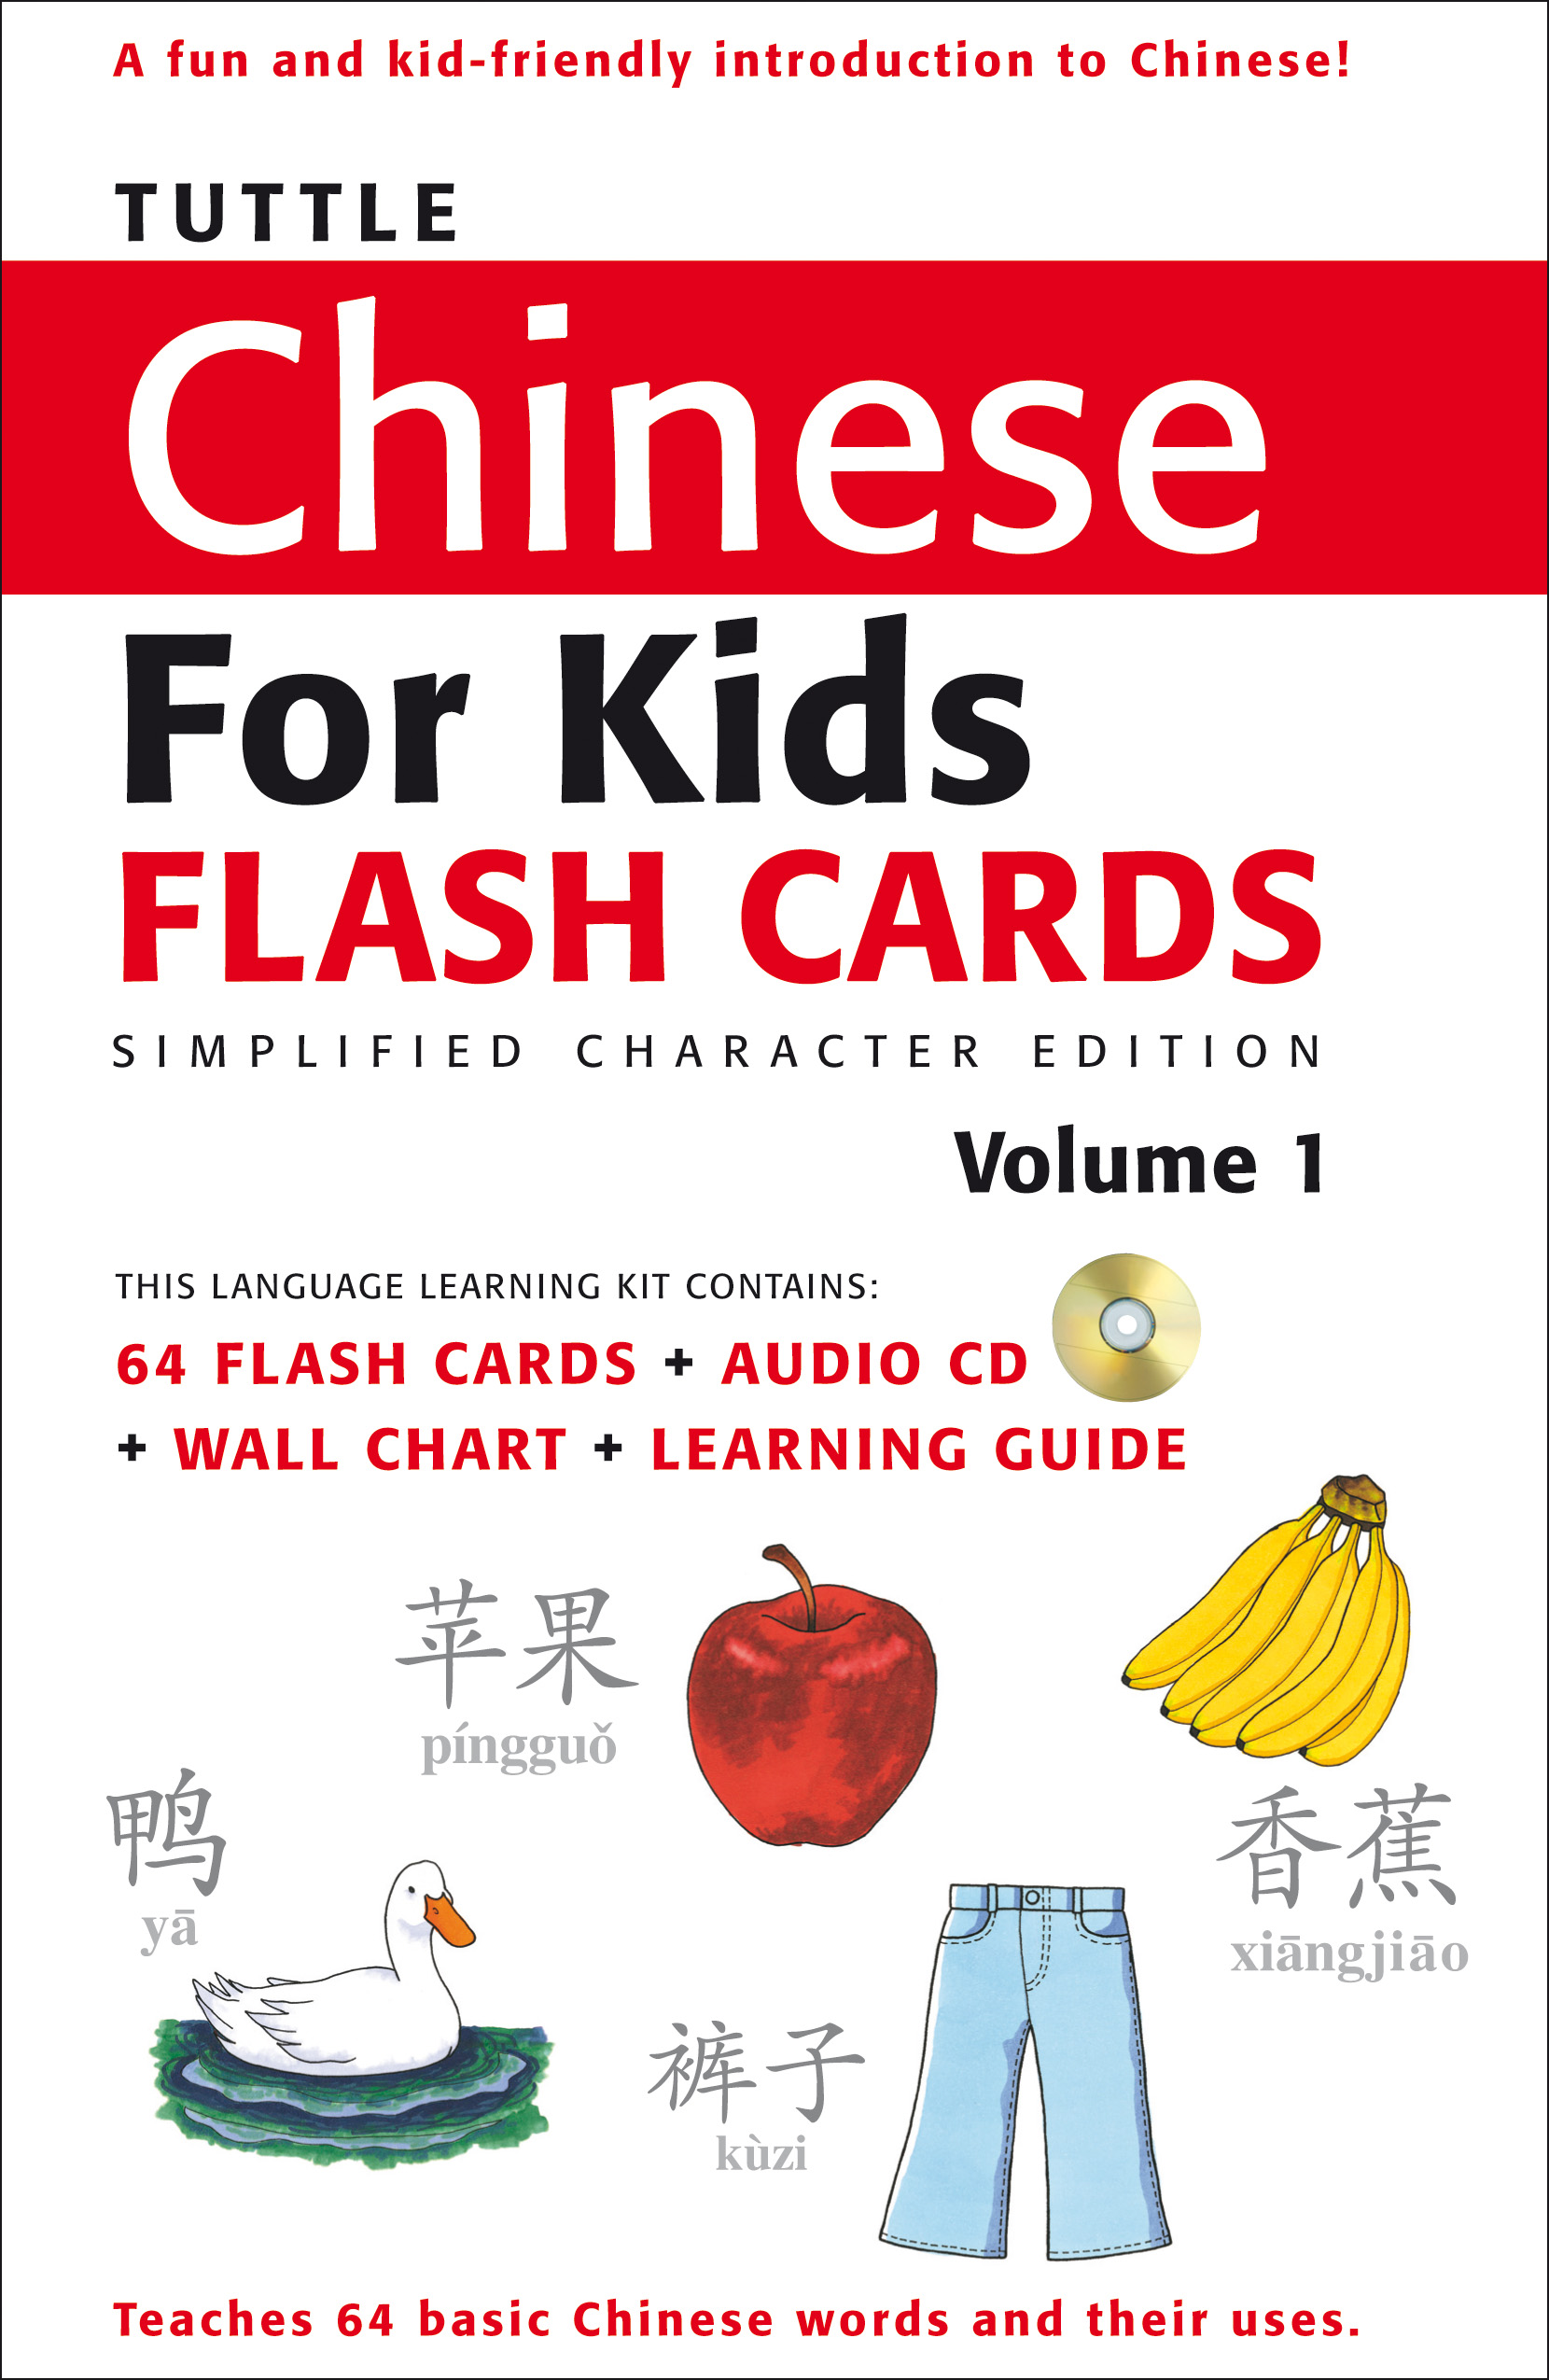 Tuttle Chinese For Kids Flash Cards Kit Vol 1 Simplified